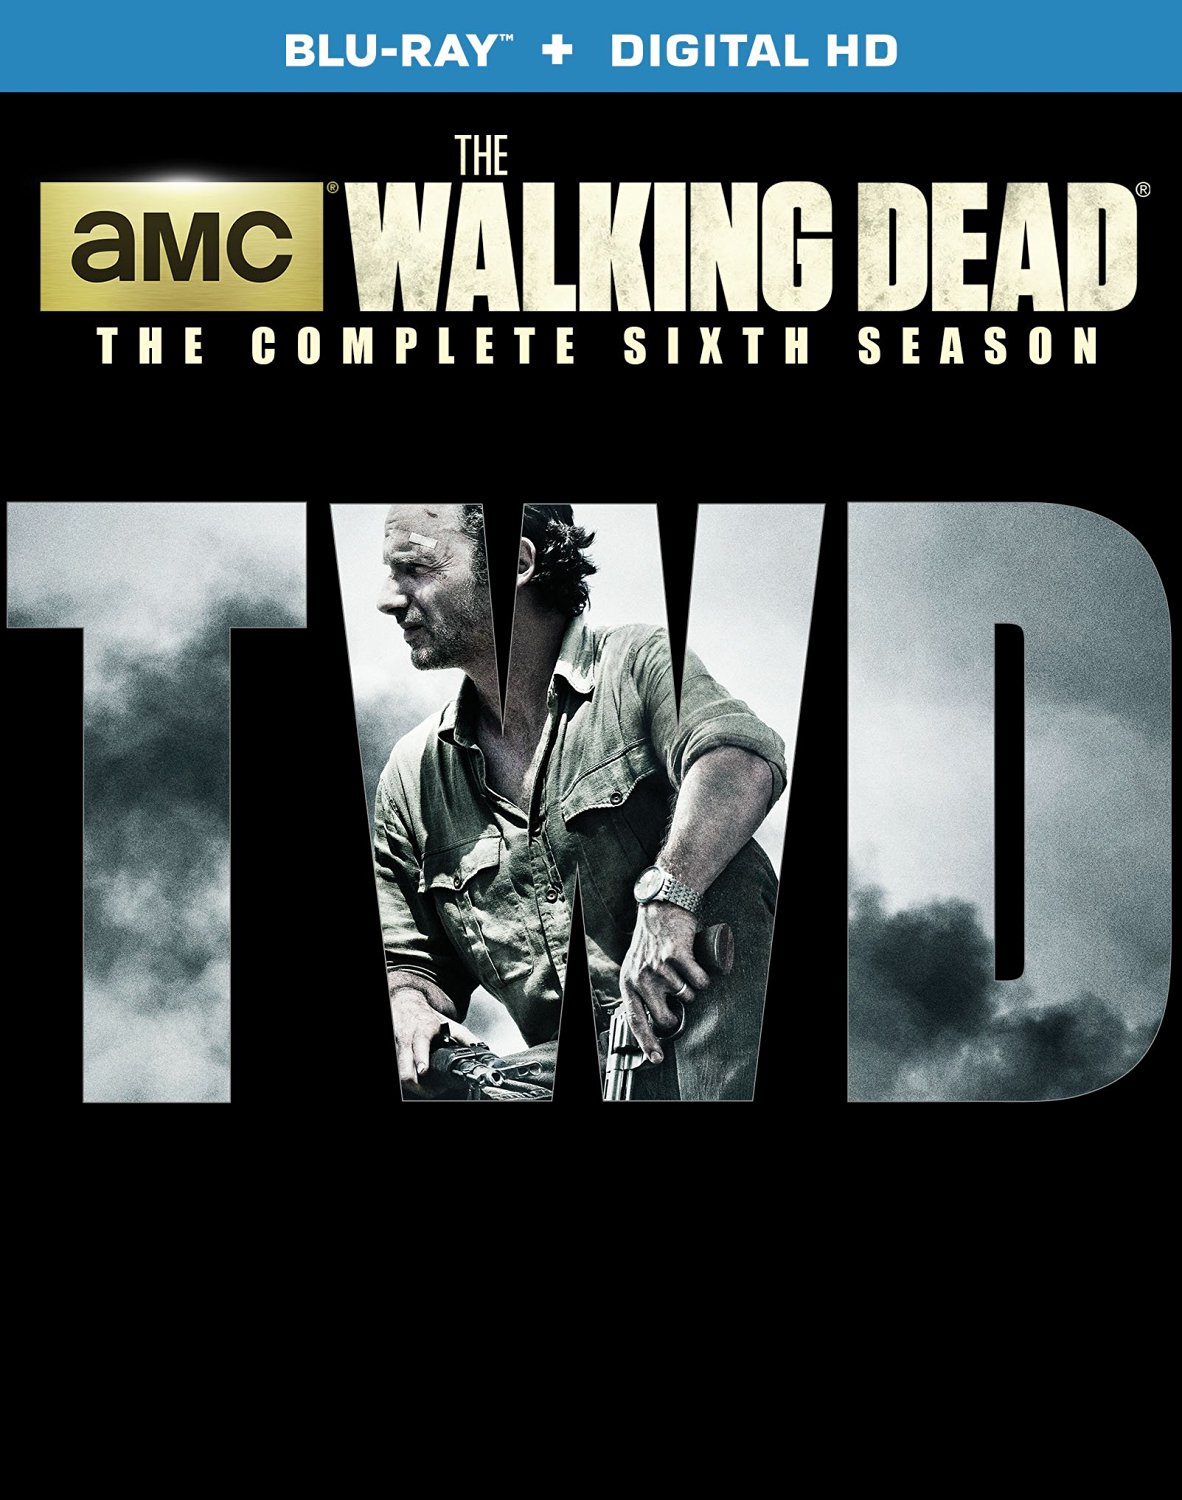 The Walking Dead [TV Series] - The Walking Dead: The Complete Sixth Season